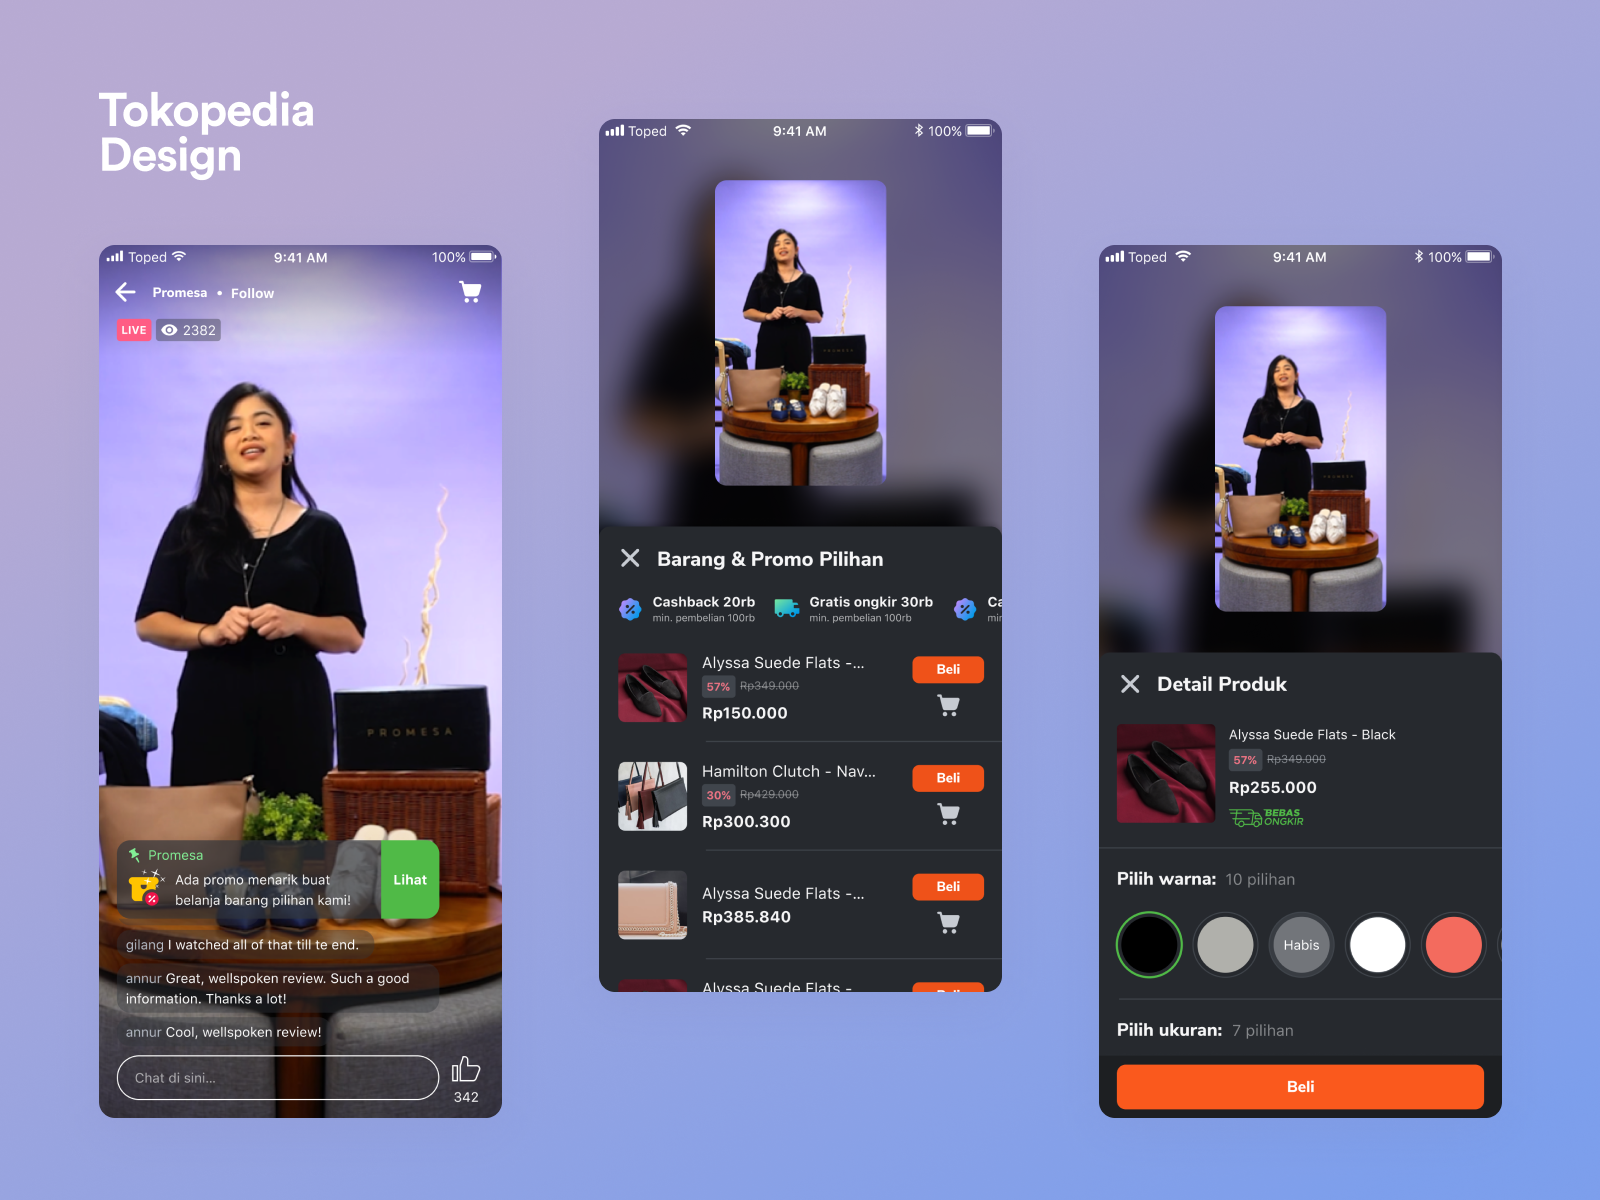 tokopedia play live room by nicholaus gilang for tokopedia on dribbble tokopedia play live room by nicholaus